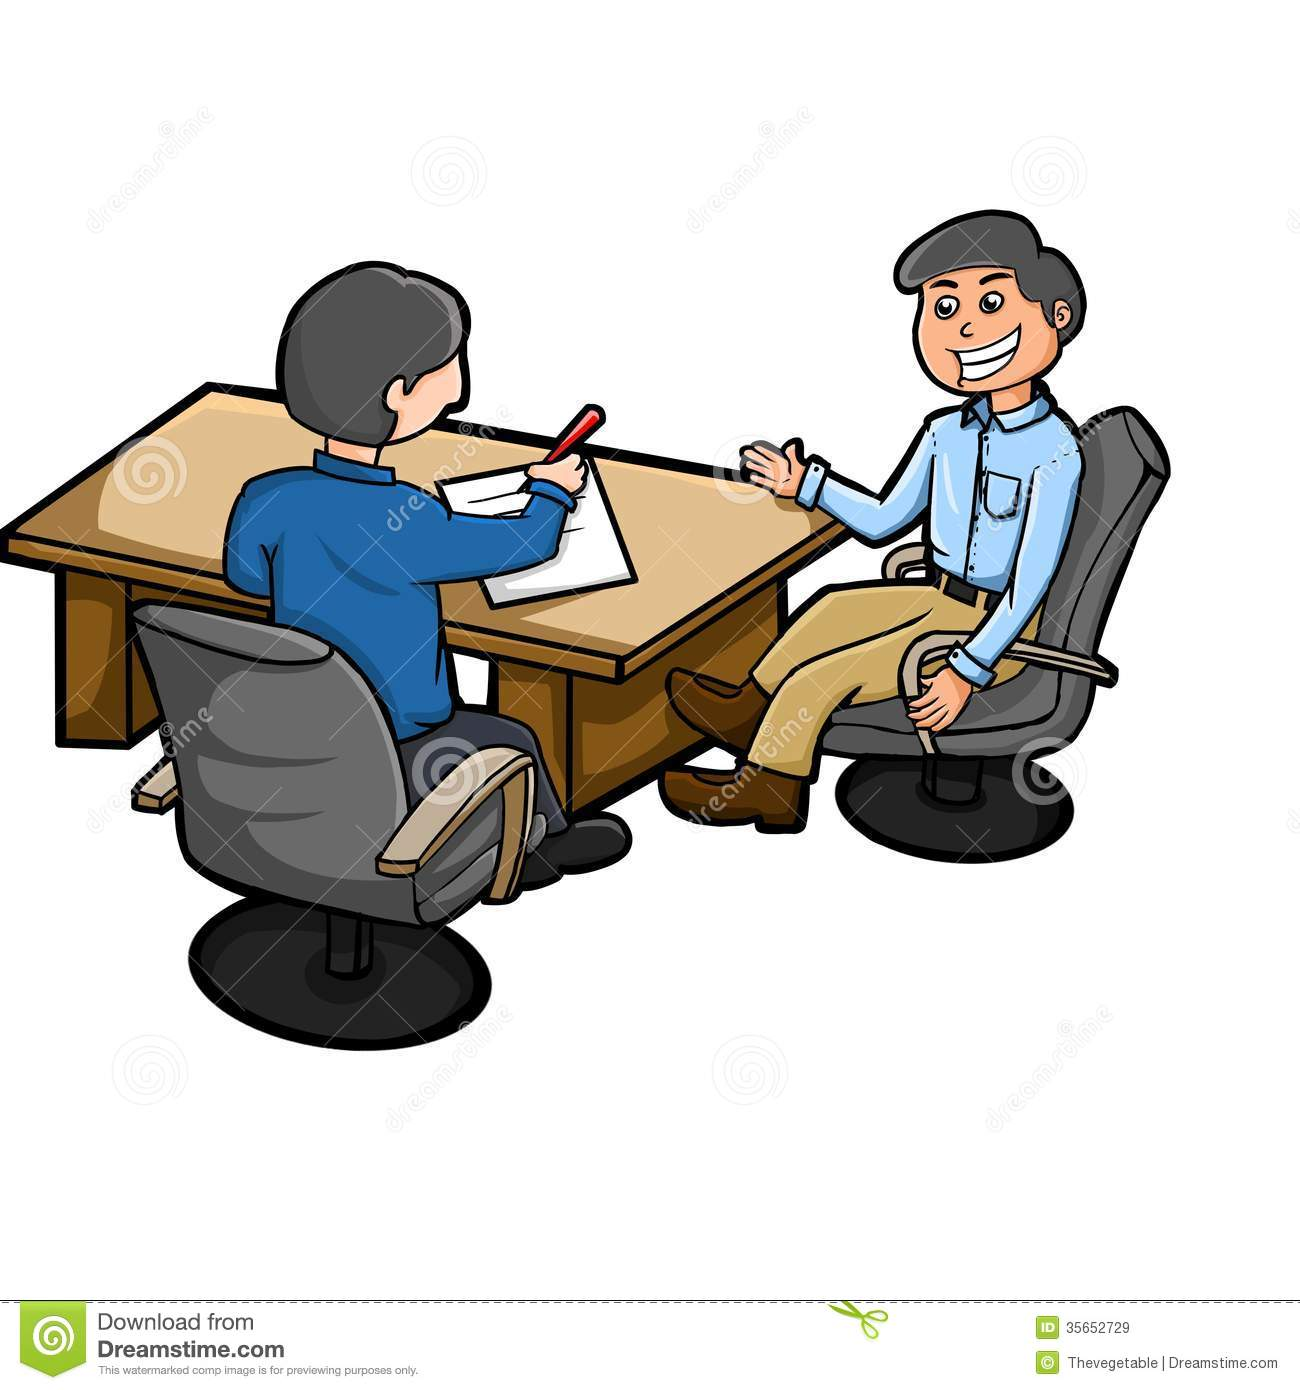 Cartoon business meeting conference Royalty Free Vector |Business Meeting Cartoon Person